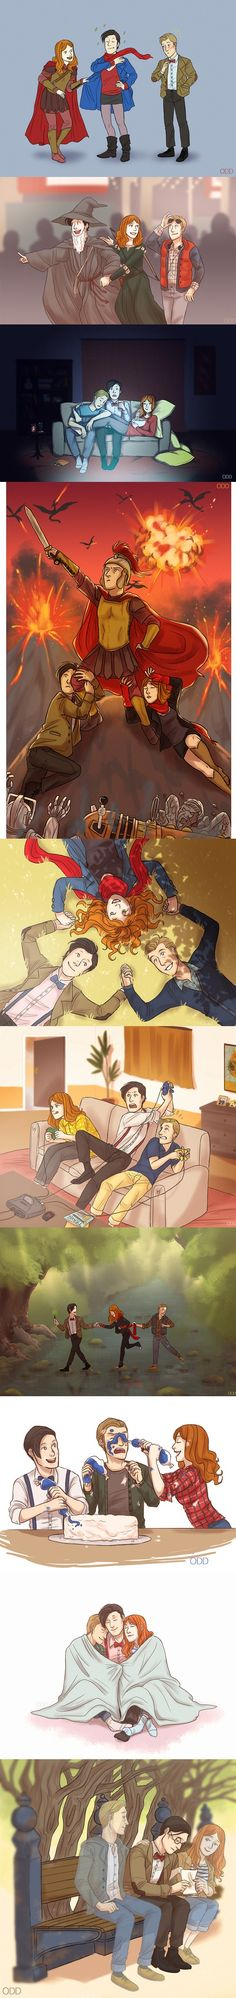 STOP I just realized in the last pic the ponds are transparent. More sobs